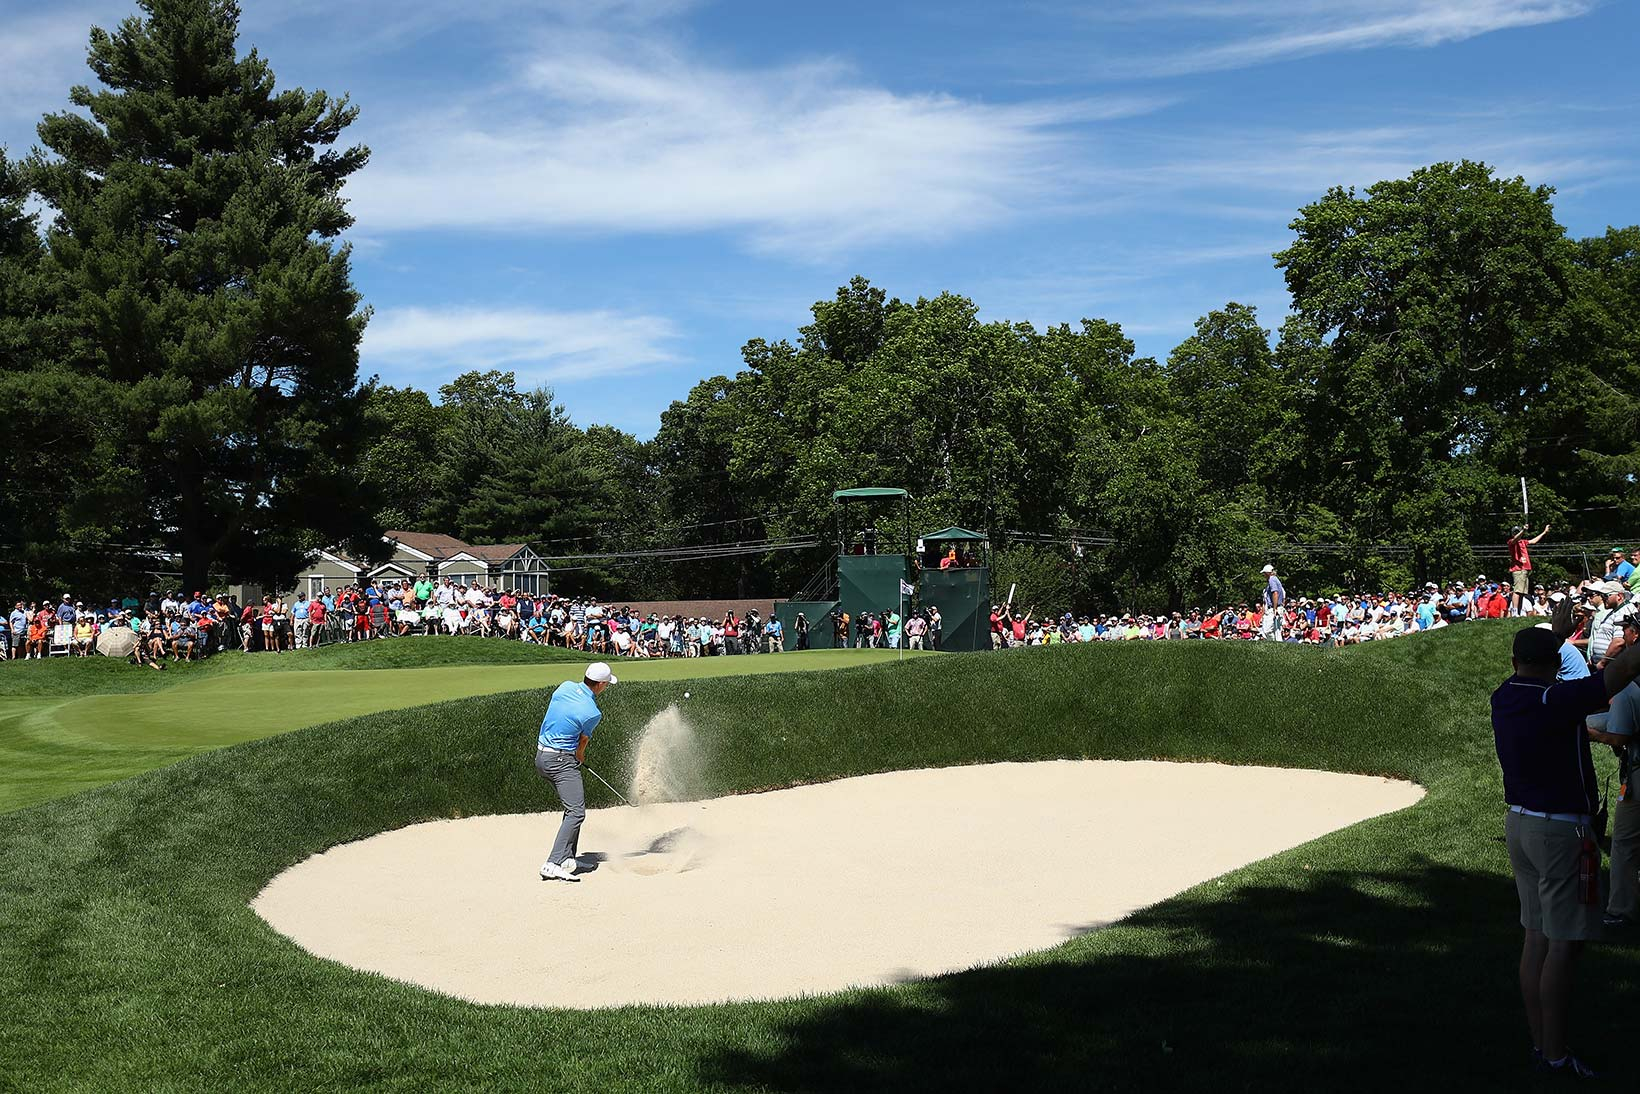 2017 Travelers Championship: Round 1 - Bunker Shot on No. 9